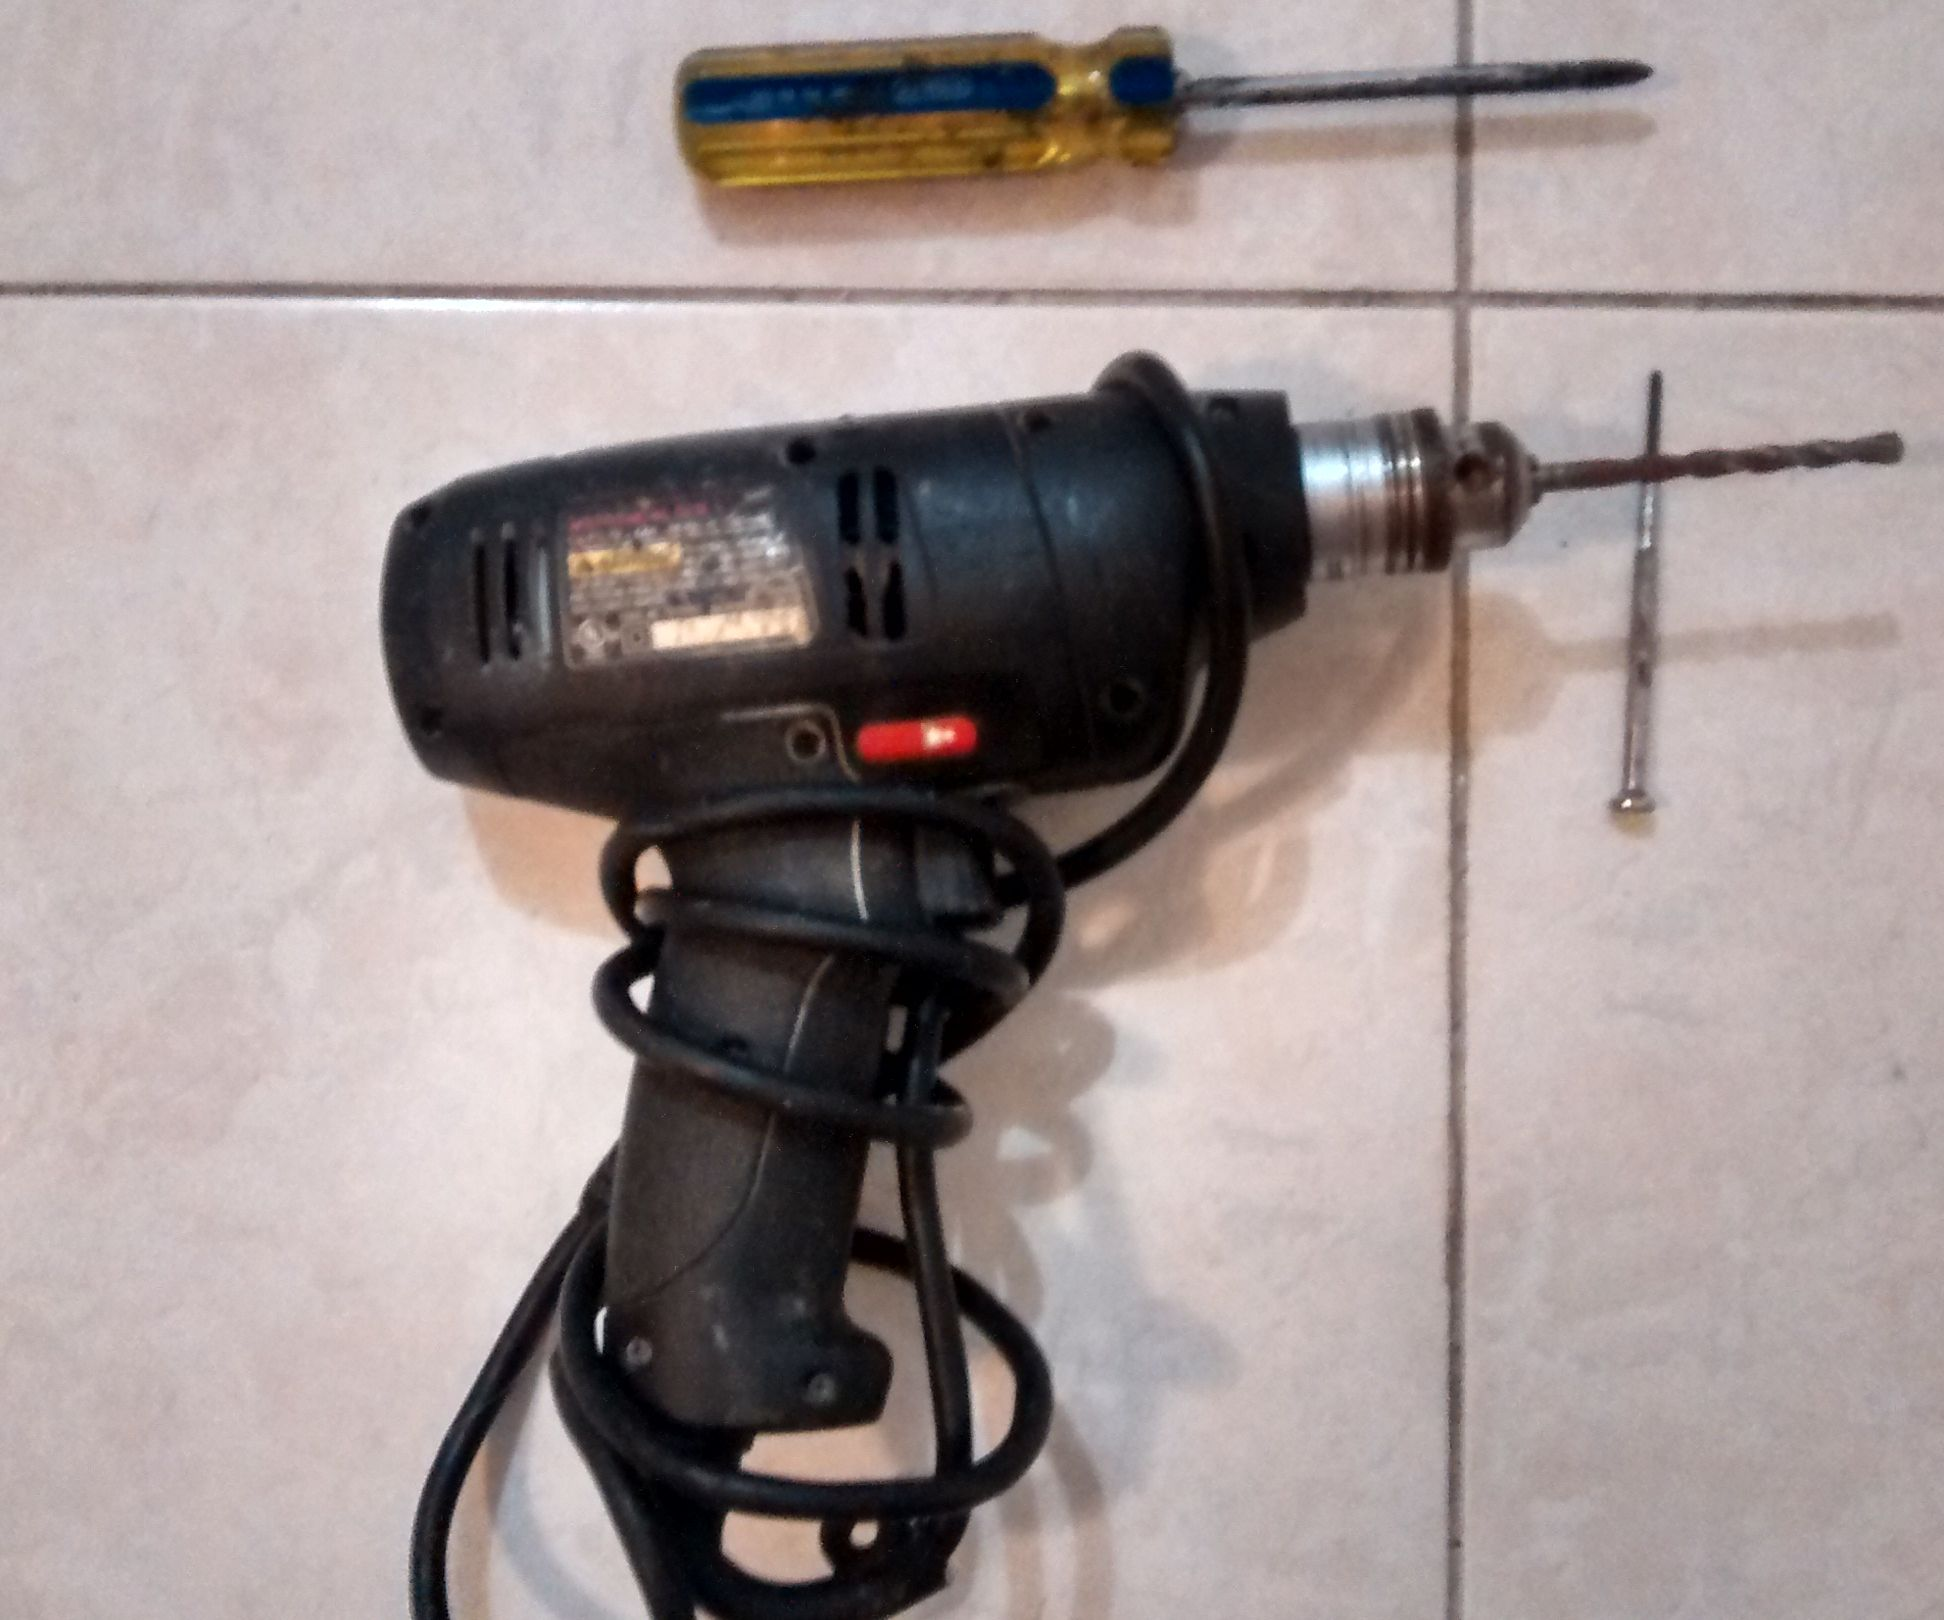 How to Change the Drill Bit Without the Key